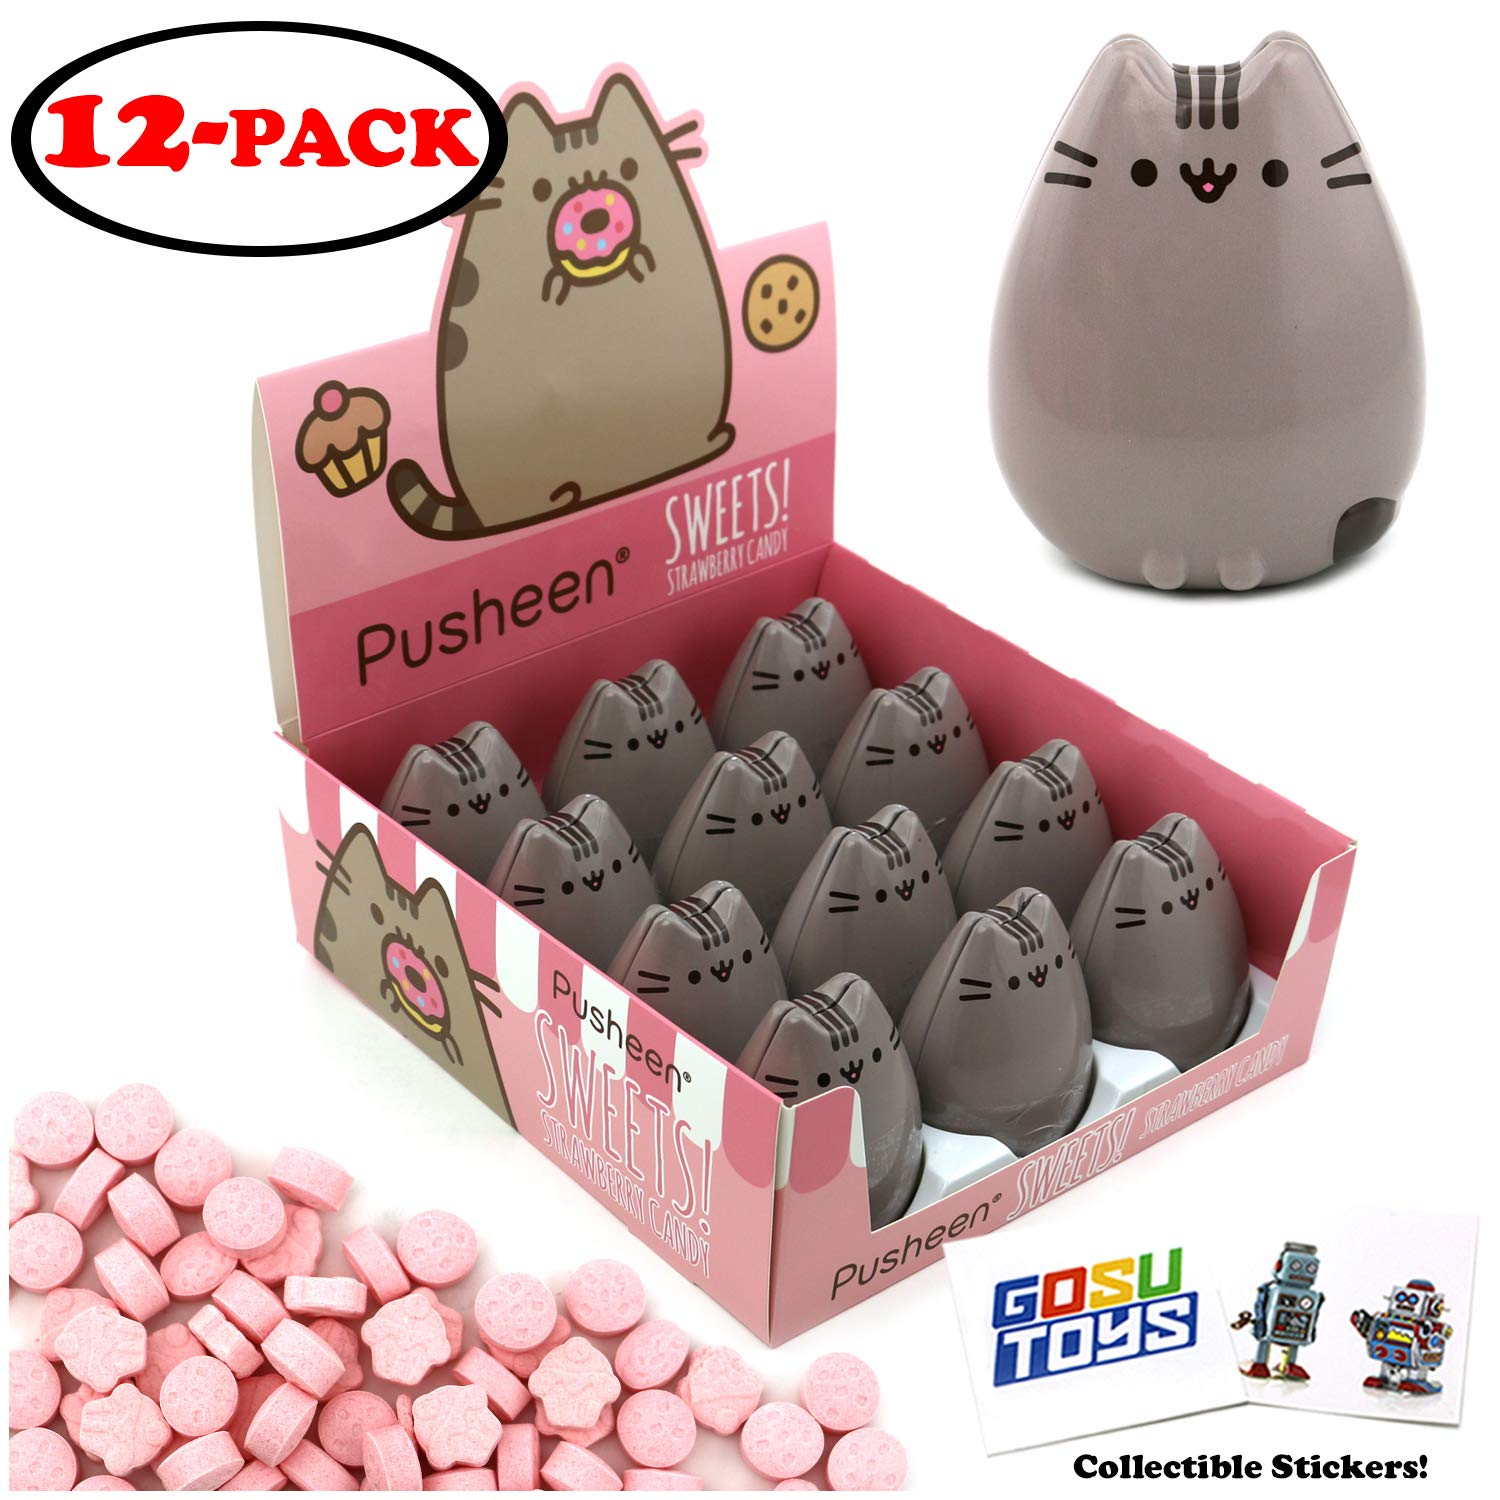 Pusheen Tin Candy (12 Pack Case) Sweet Strawberry Flavor Gift Stuffer with 2 GosuToys Stickers by Gosu Toys